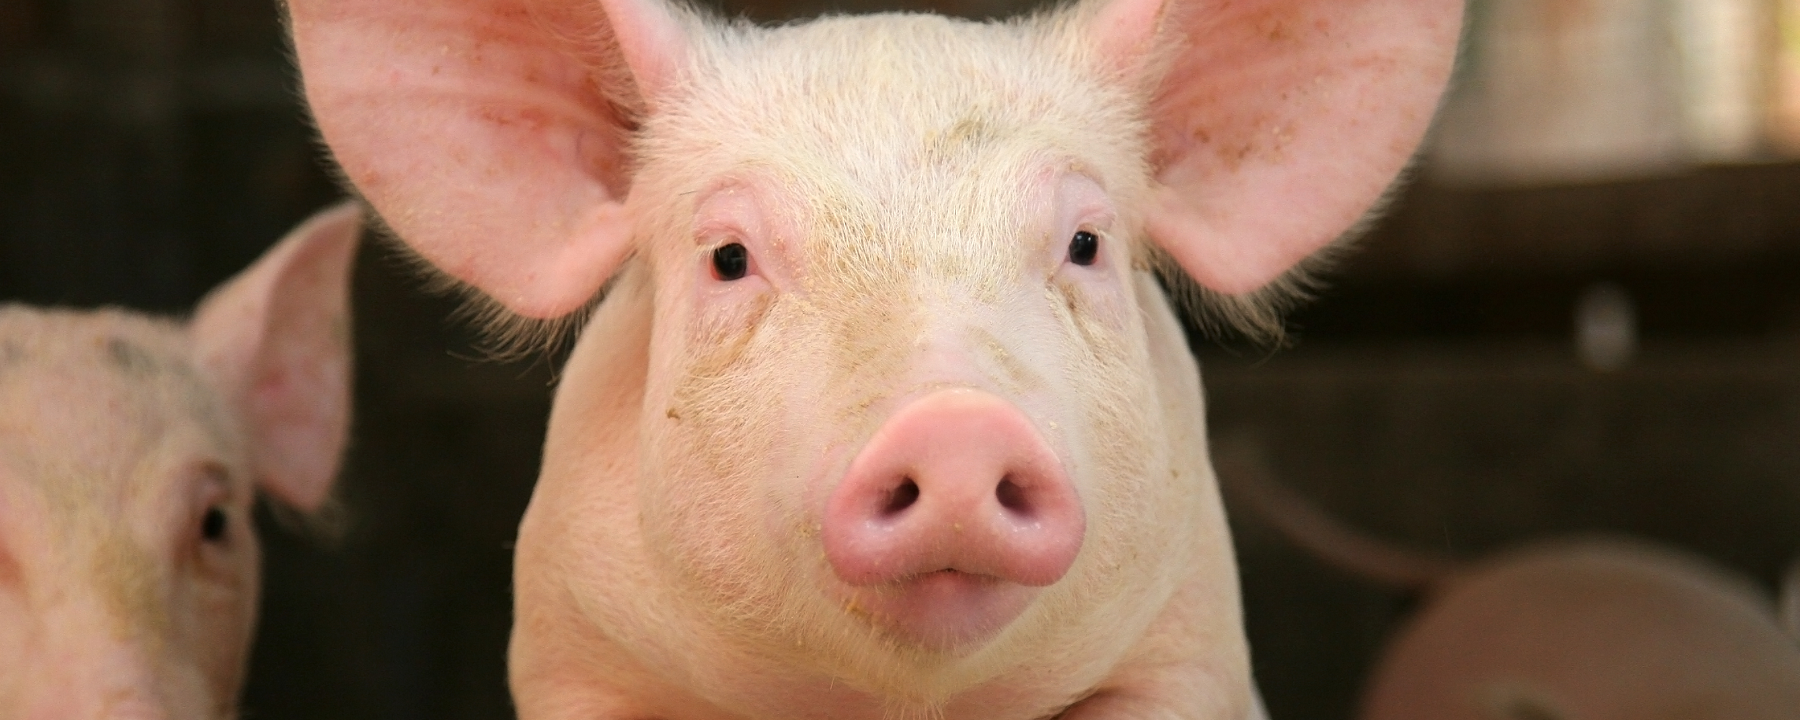 FDA Clears Genetic Modification in Pigs for Biomedicine and Food